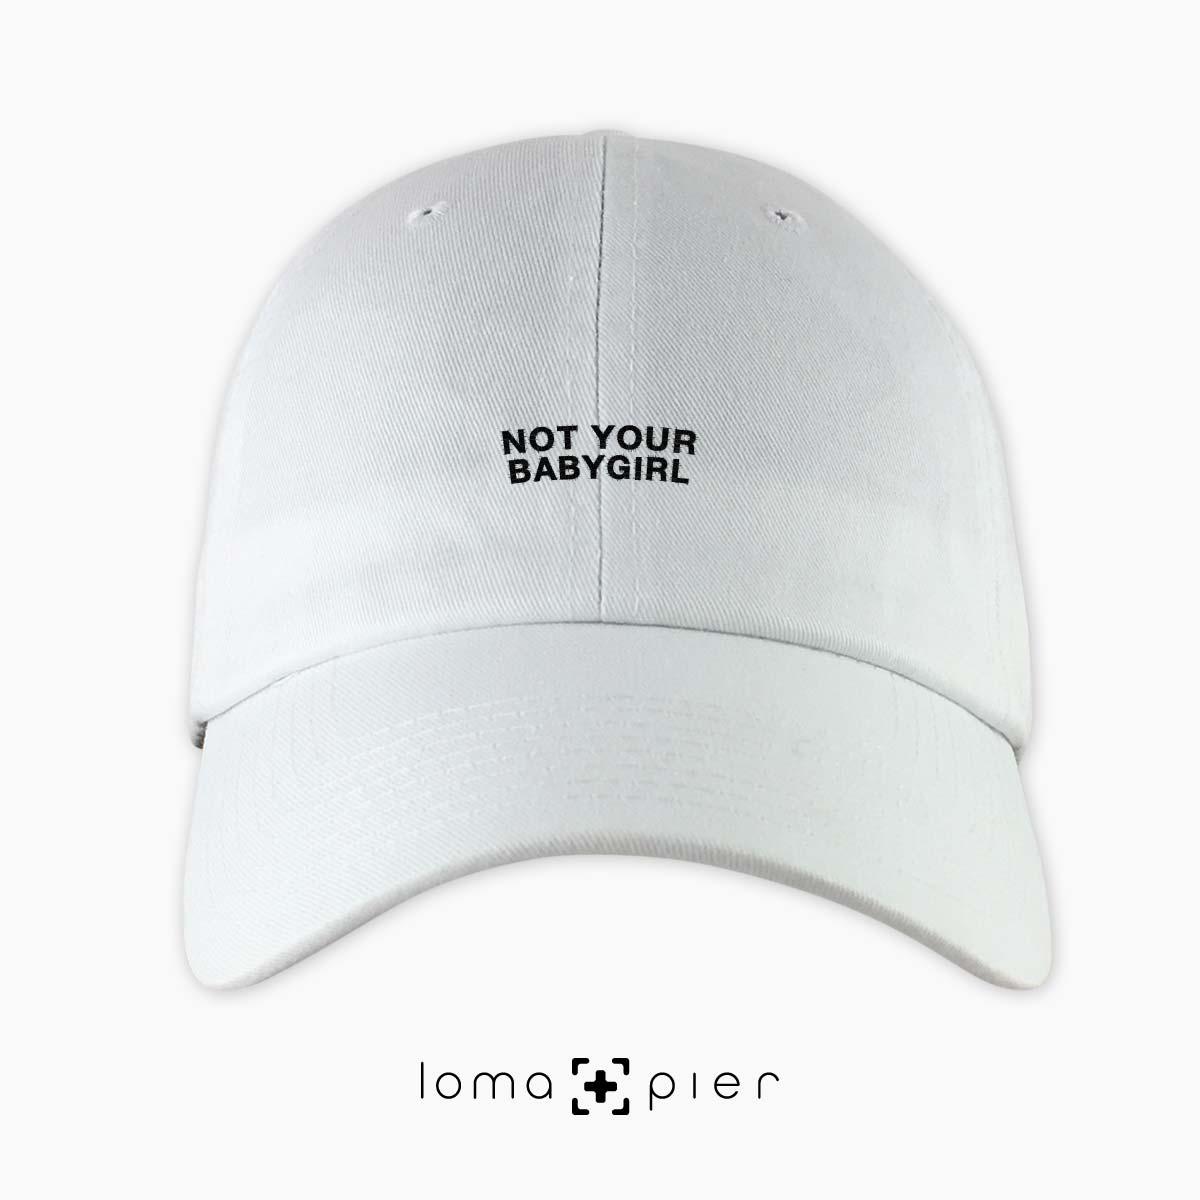 NOT YOUR BABYGIRL dad hat by loma+pier hat store